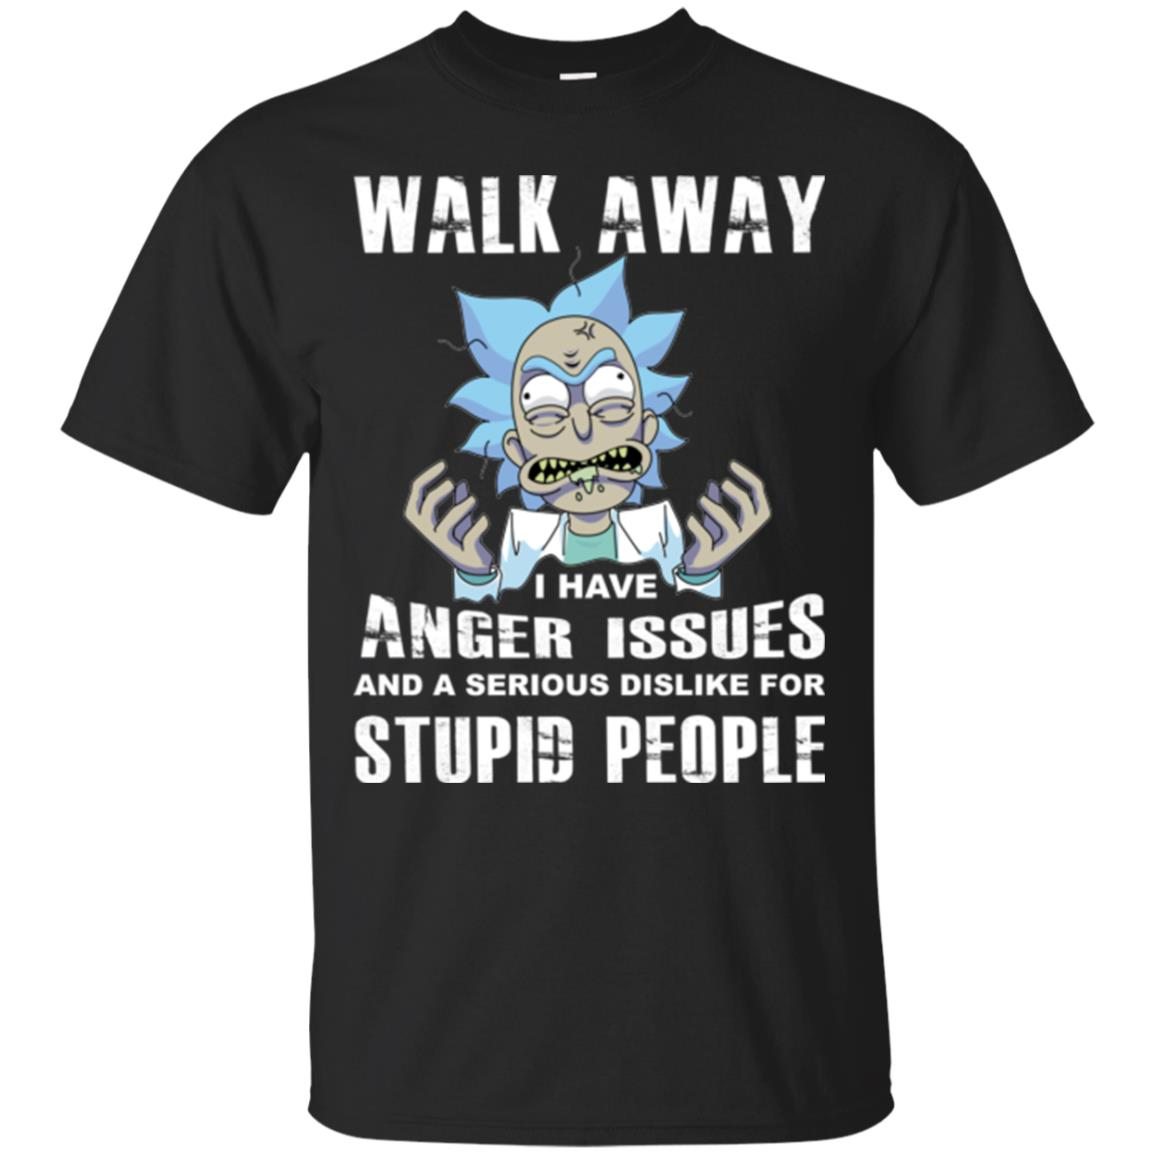 image 236px Rick and Morty: Walk away I have anger issues for stupid people t shirt